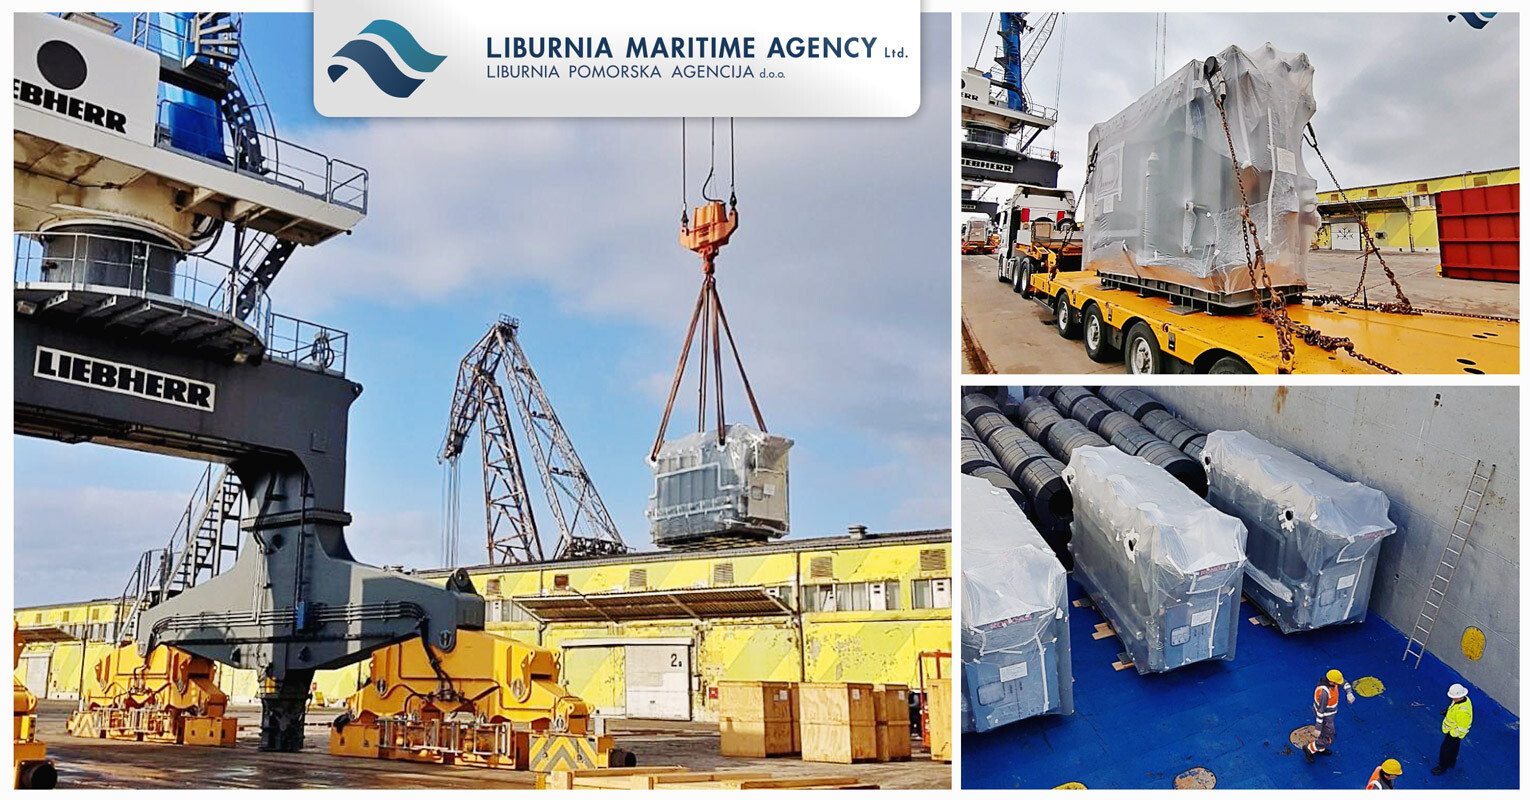 Liburnia Maritime Agency Loaded a 4x55.6 mt Transformers + Components